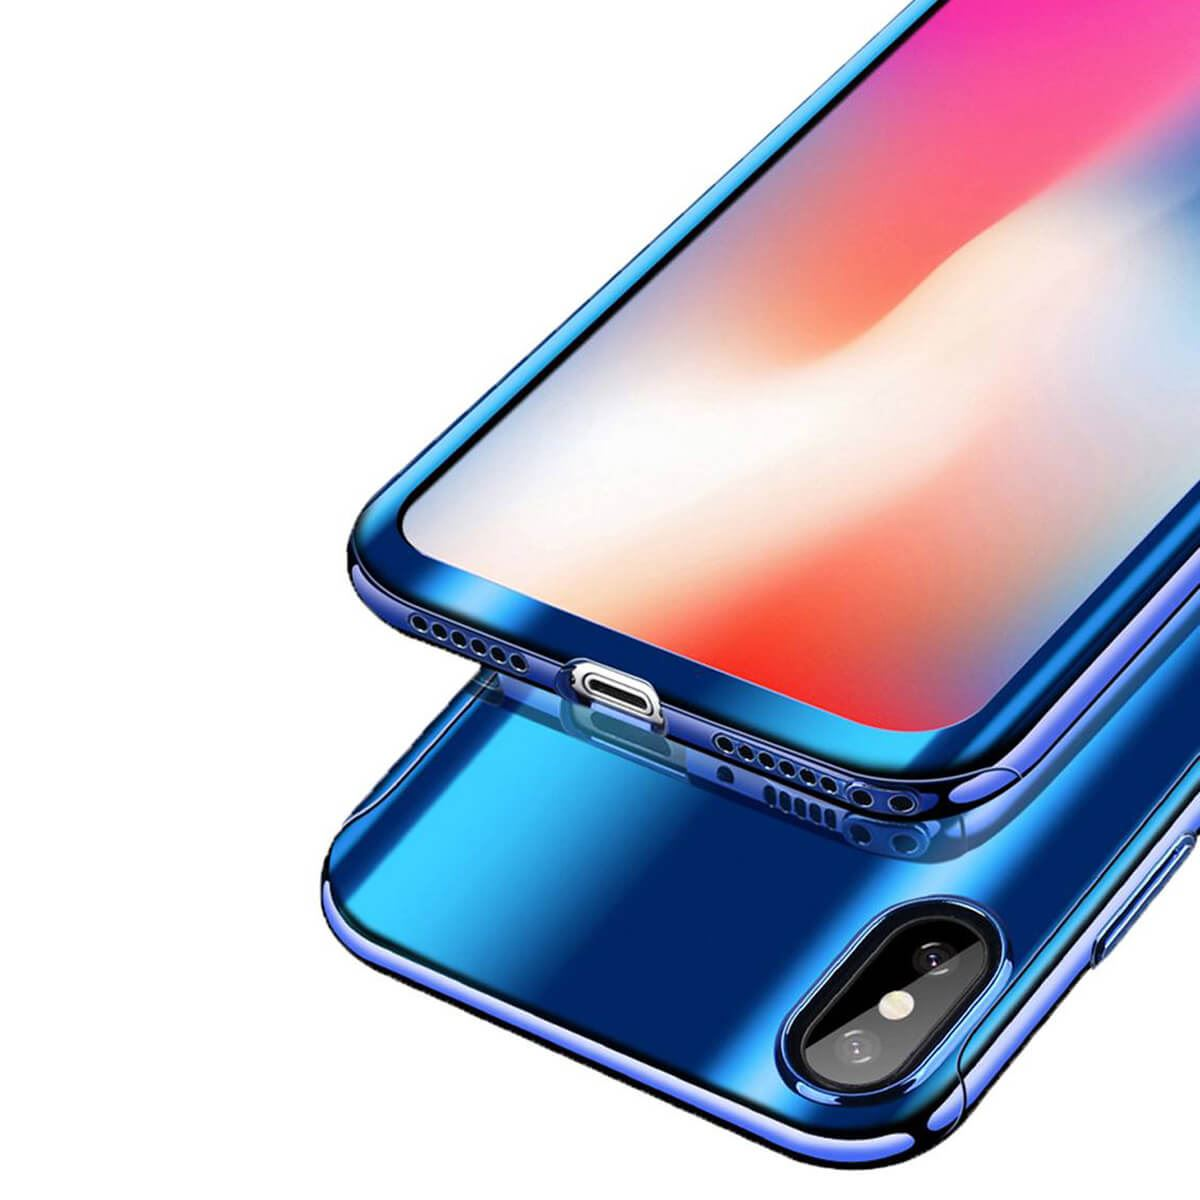 Tempered-Glass-Cover-For-iPhone-X-8-7-Plus-6s-5-Mirror-Hybrid-360-Hard-Thin-Case thumbnail 16